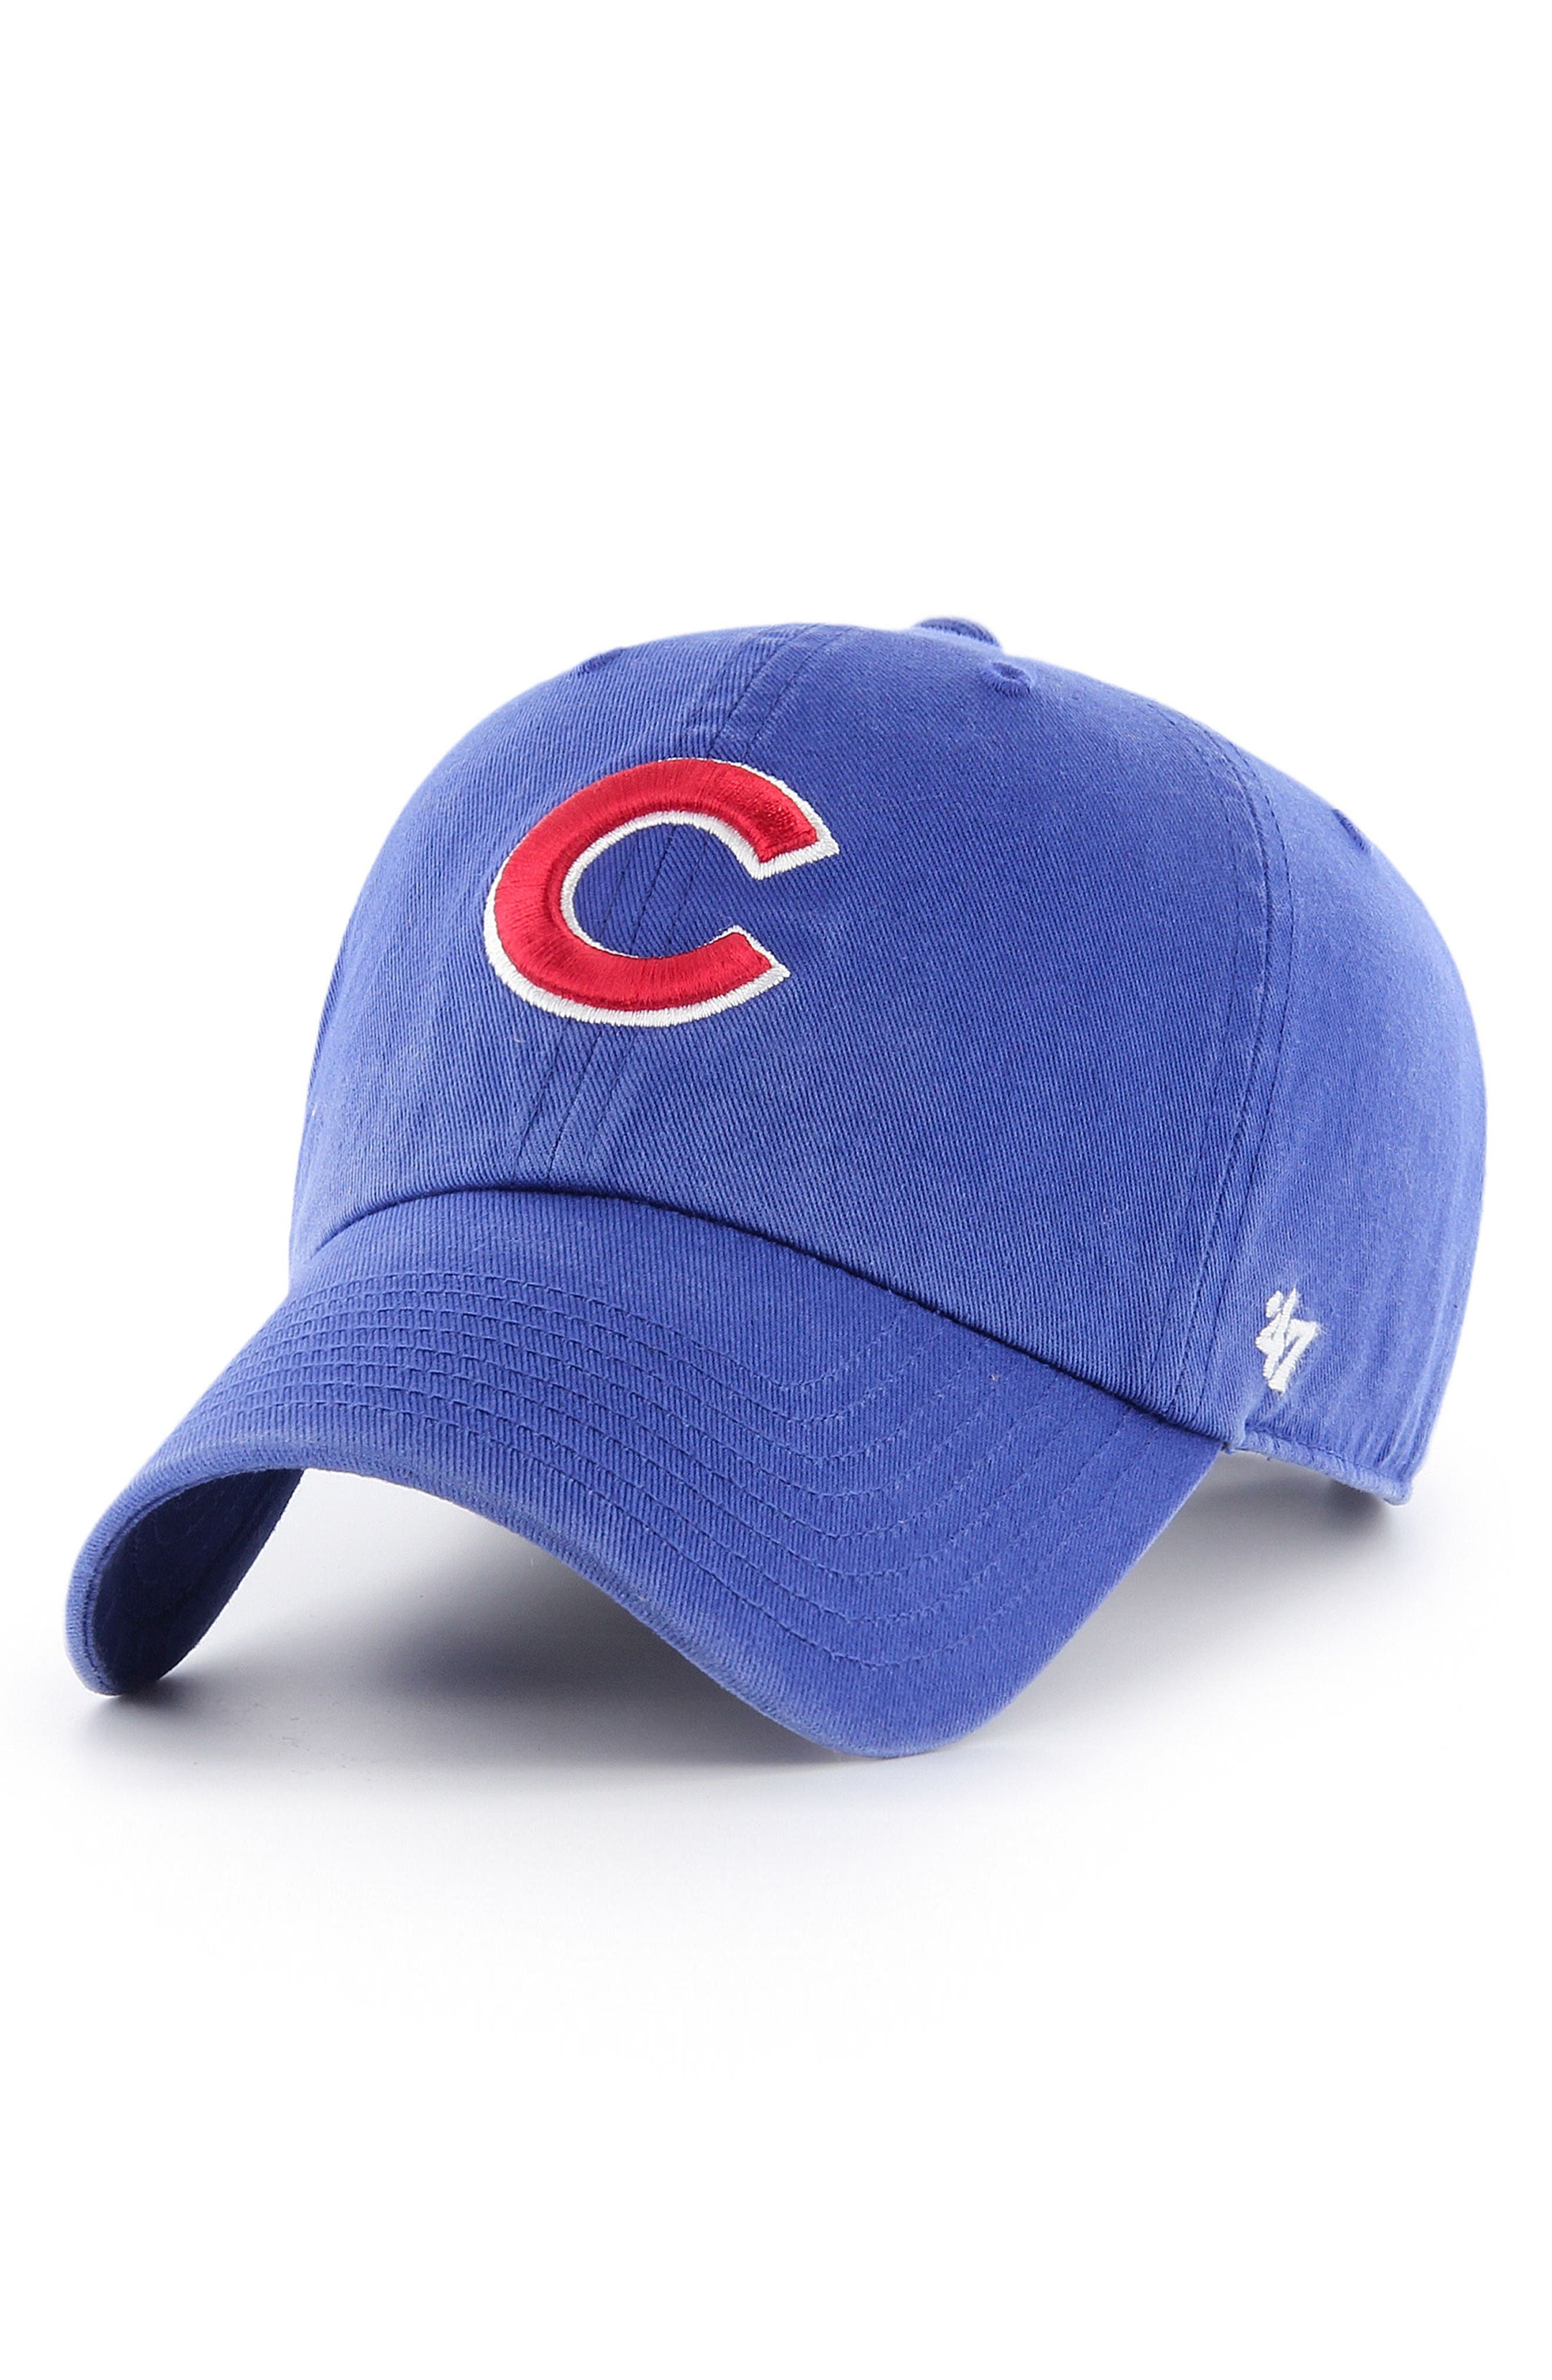 Clean Up - Chicago Cubs Baseball Cap,                         Main,                         color, Blue